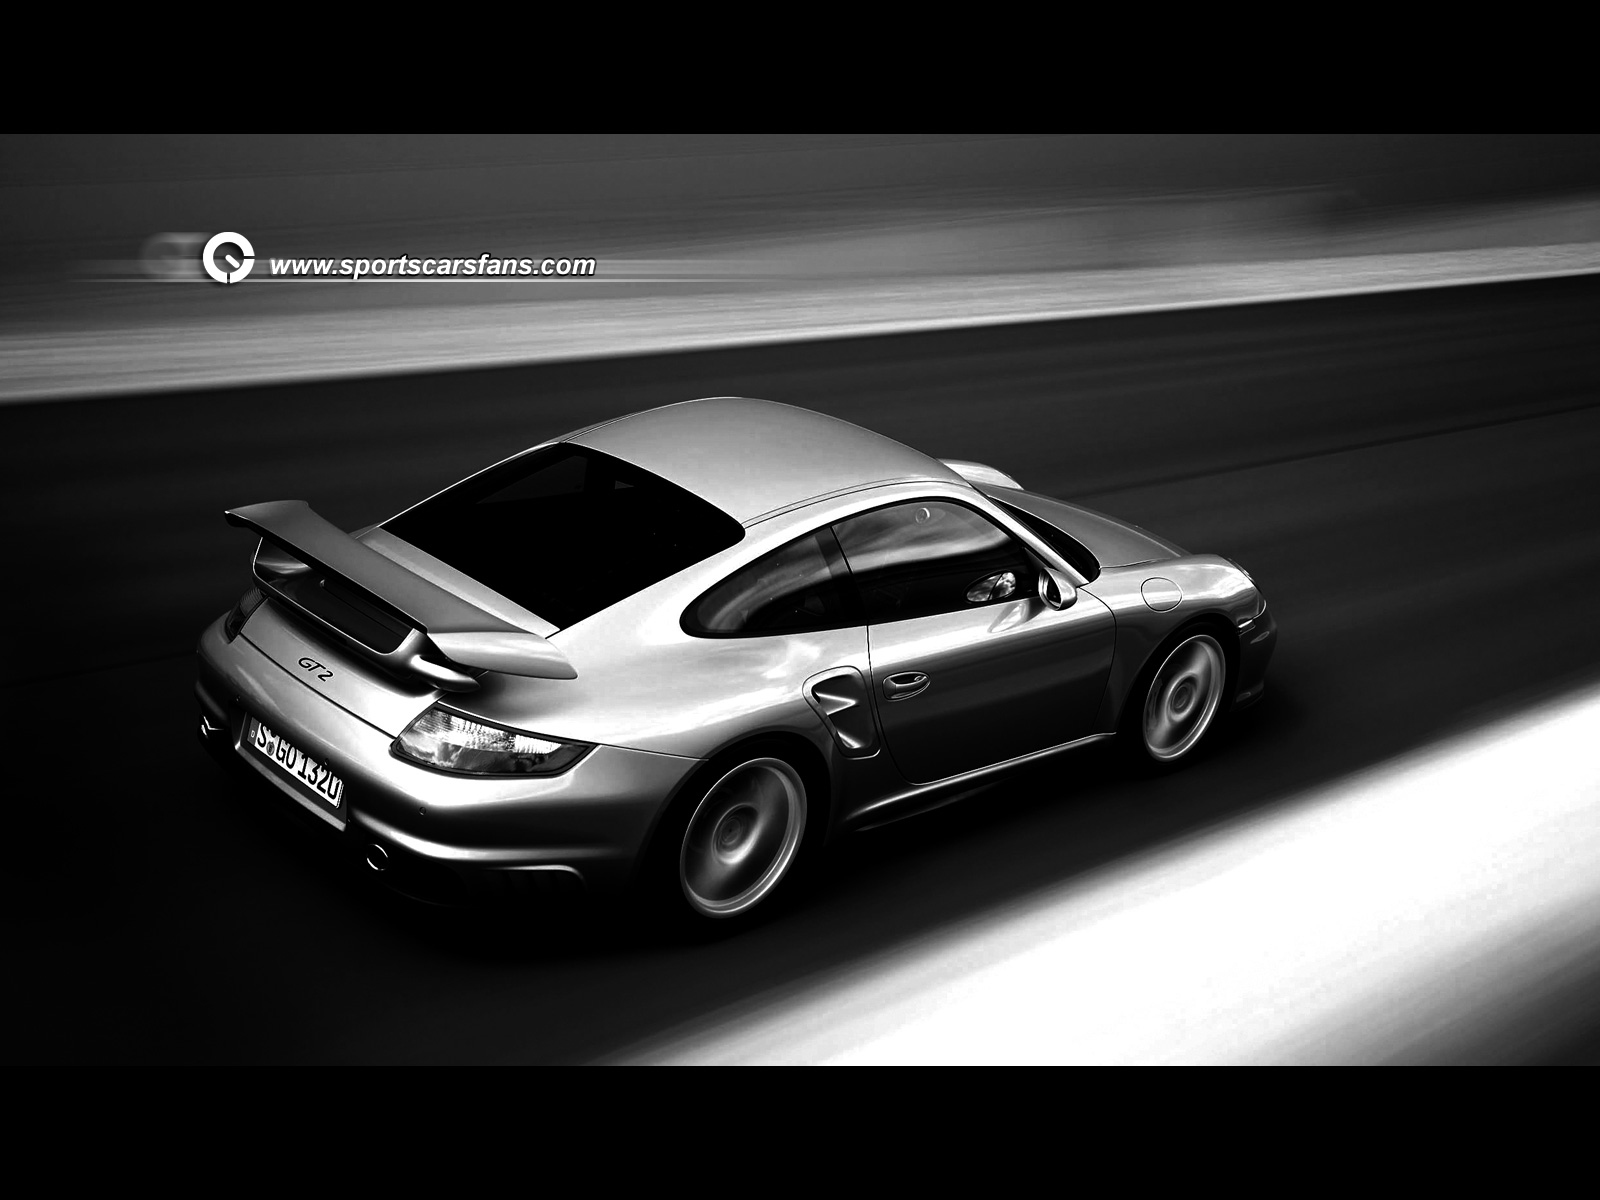 Sports Cars Fast Cars Exotic Cool Cars Information